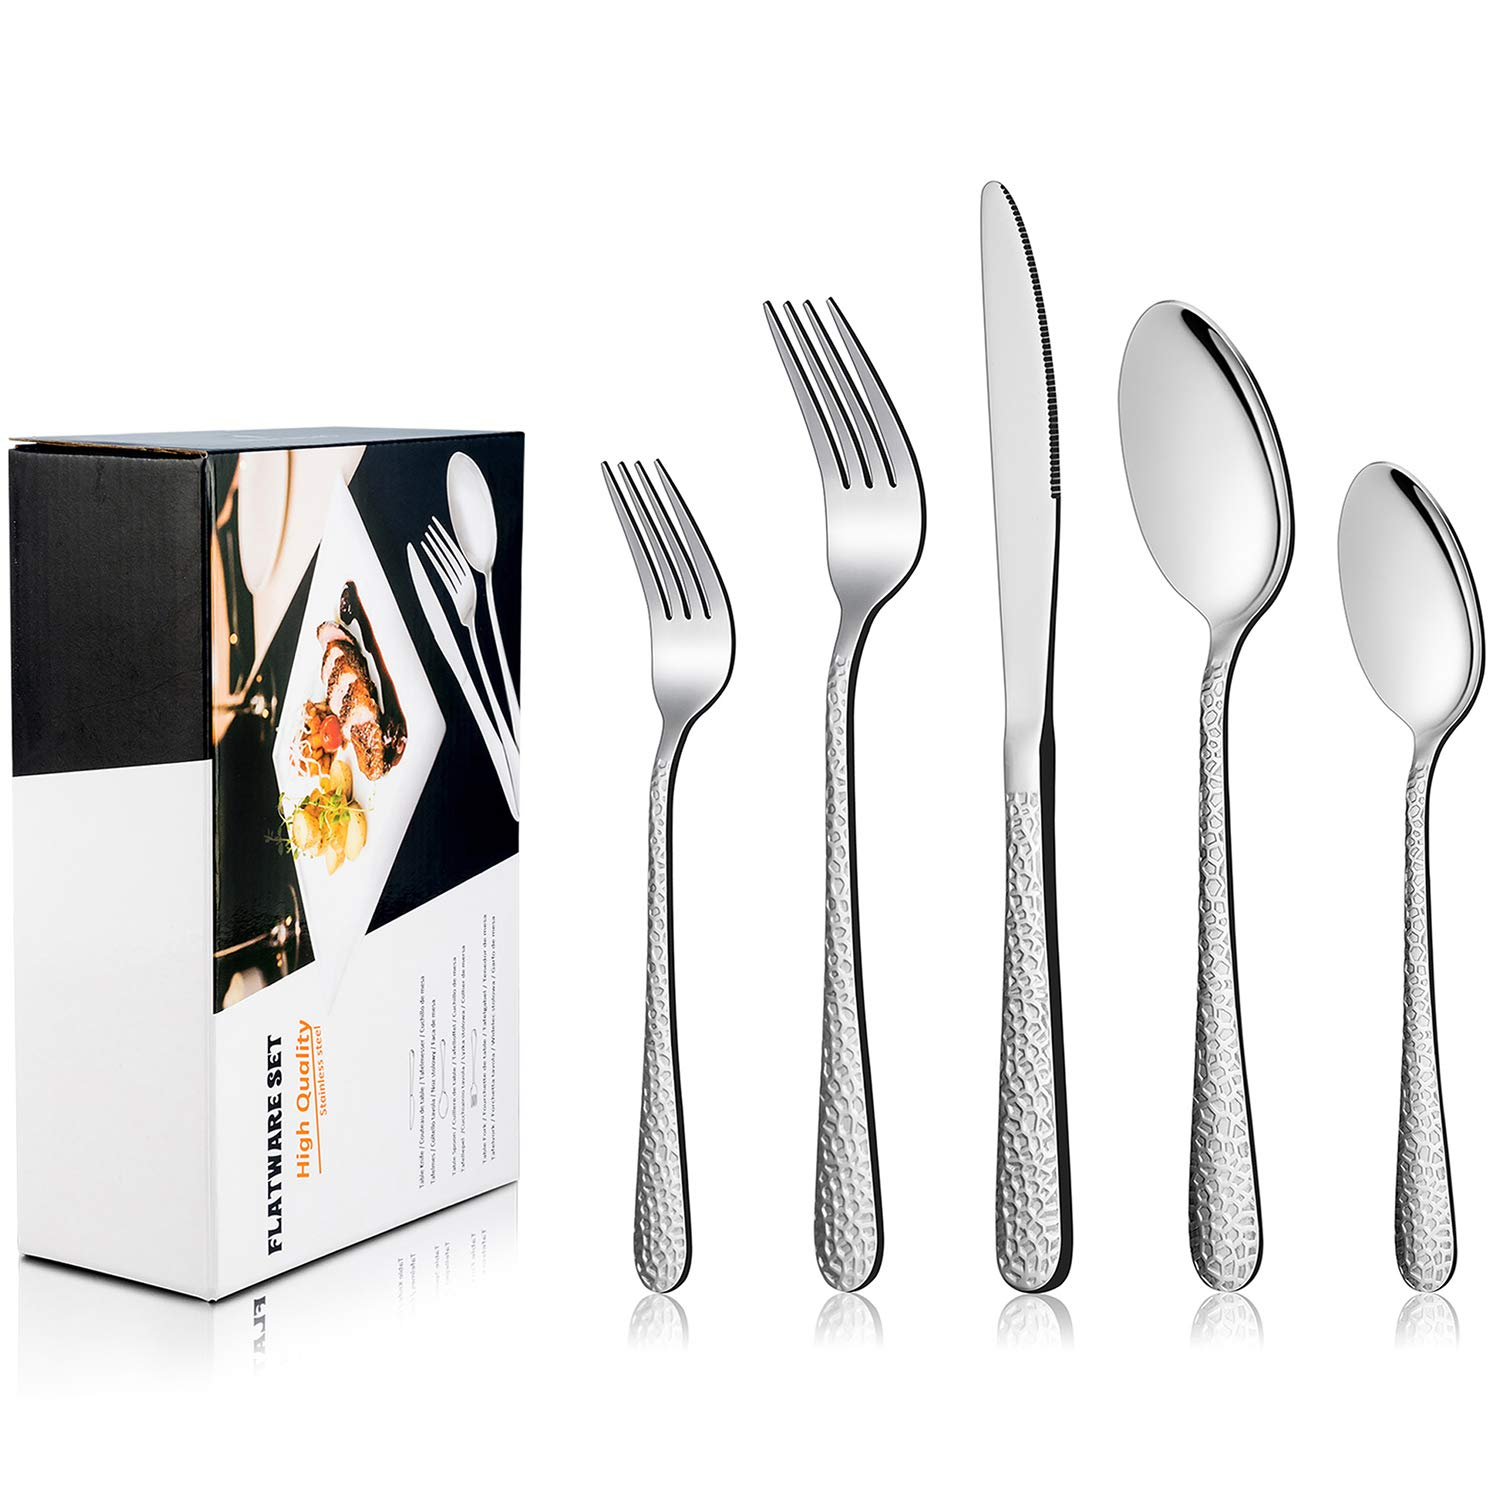 Hammered Silverware Set, LIANYU 40-Piece Stainless Steel Cutlery Flatware Set for 8, Tableware Eating Utensils, Mirror Finish, Dishwasher Safe by LIANYU (Image #7)